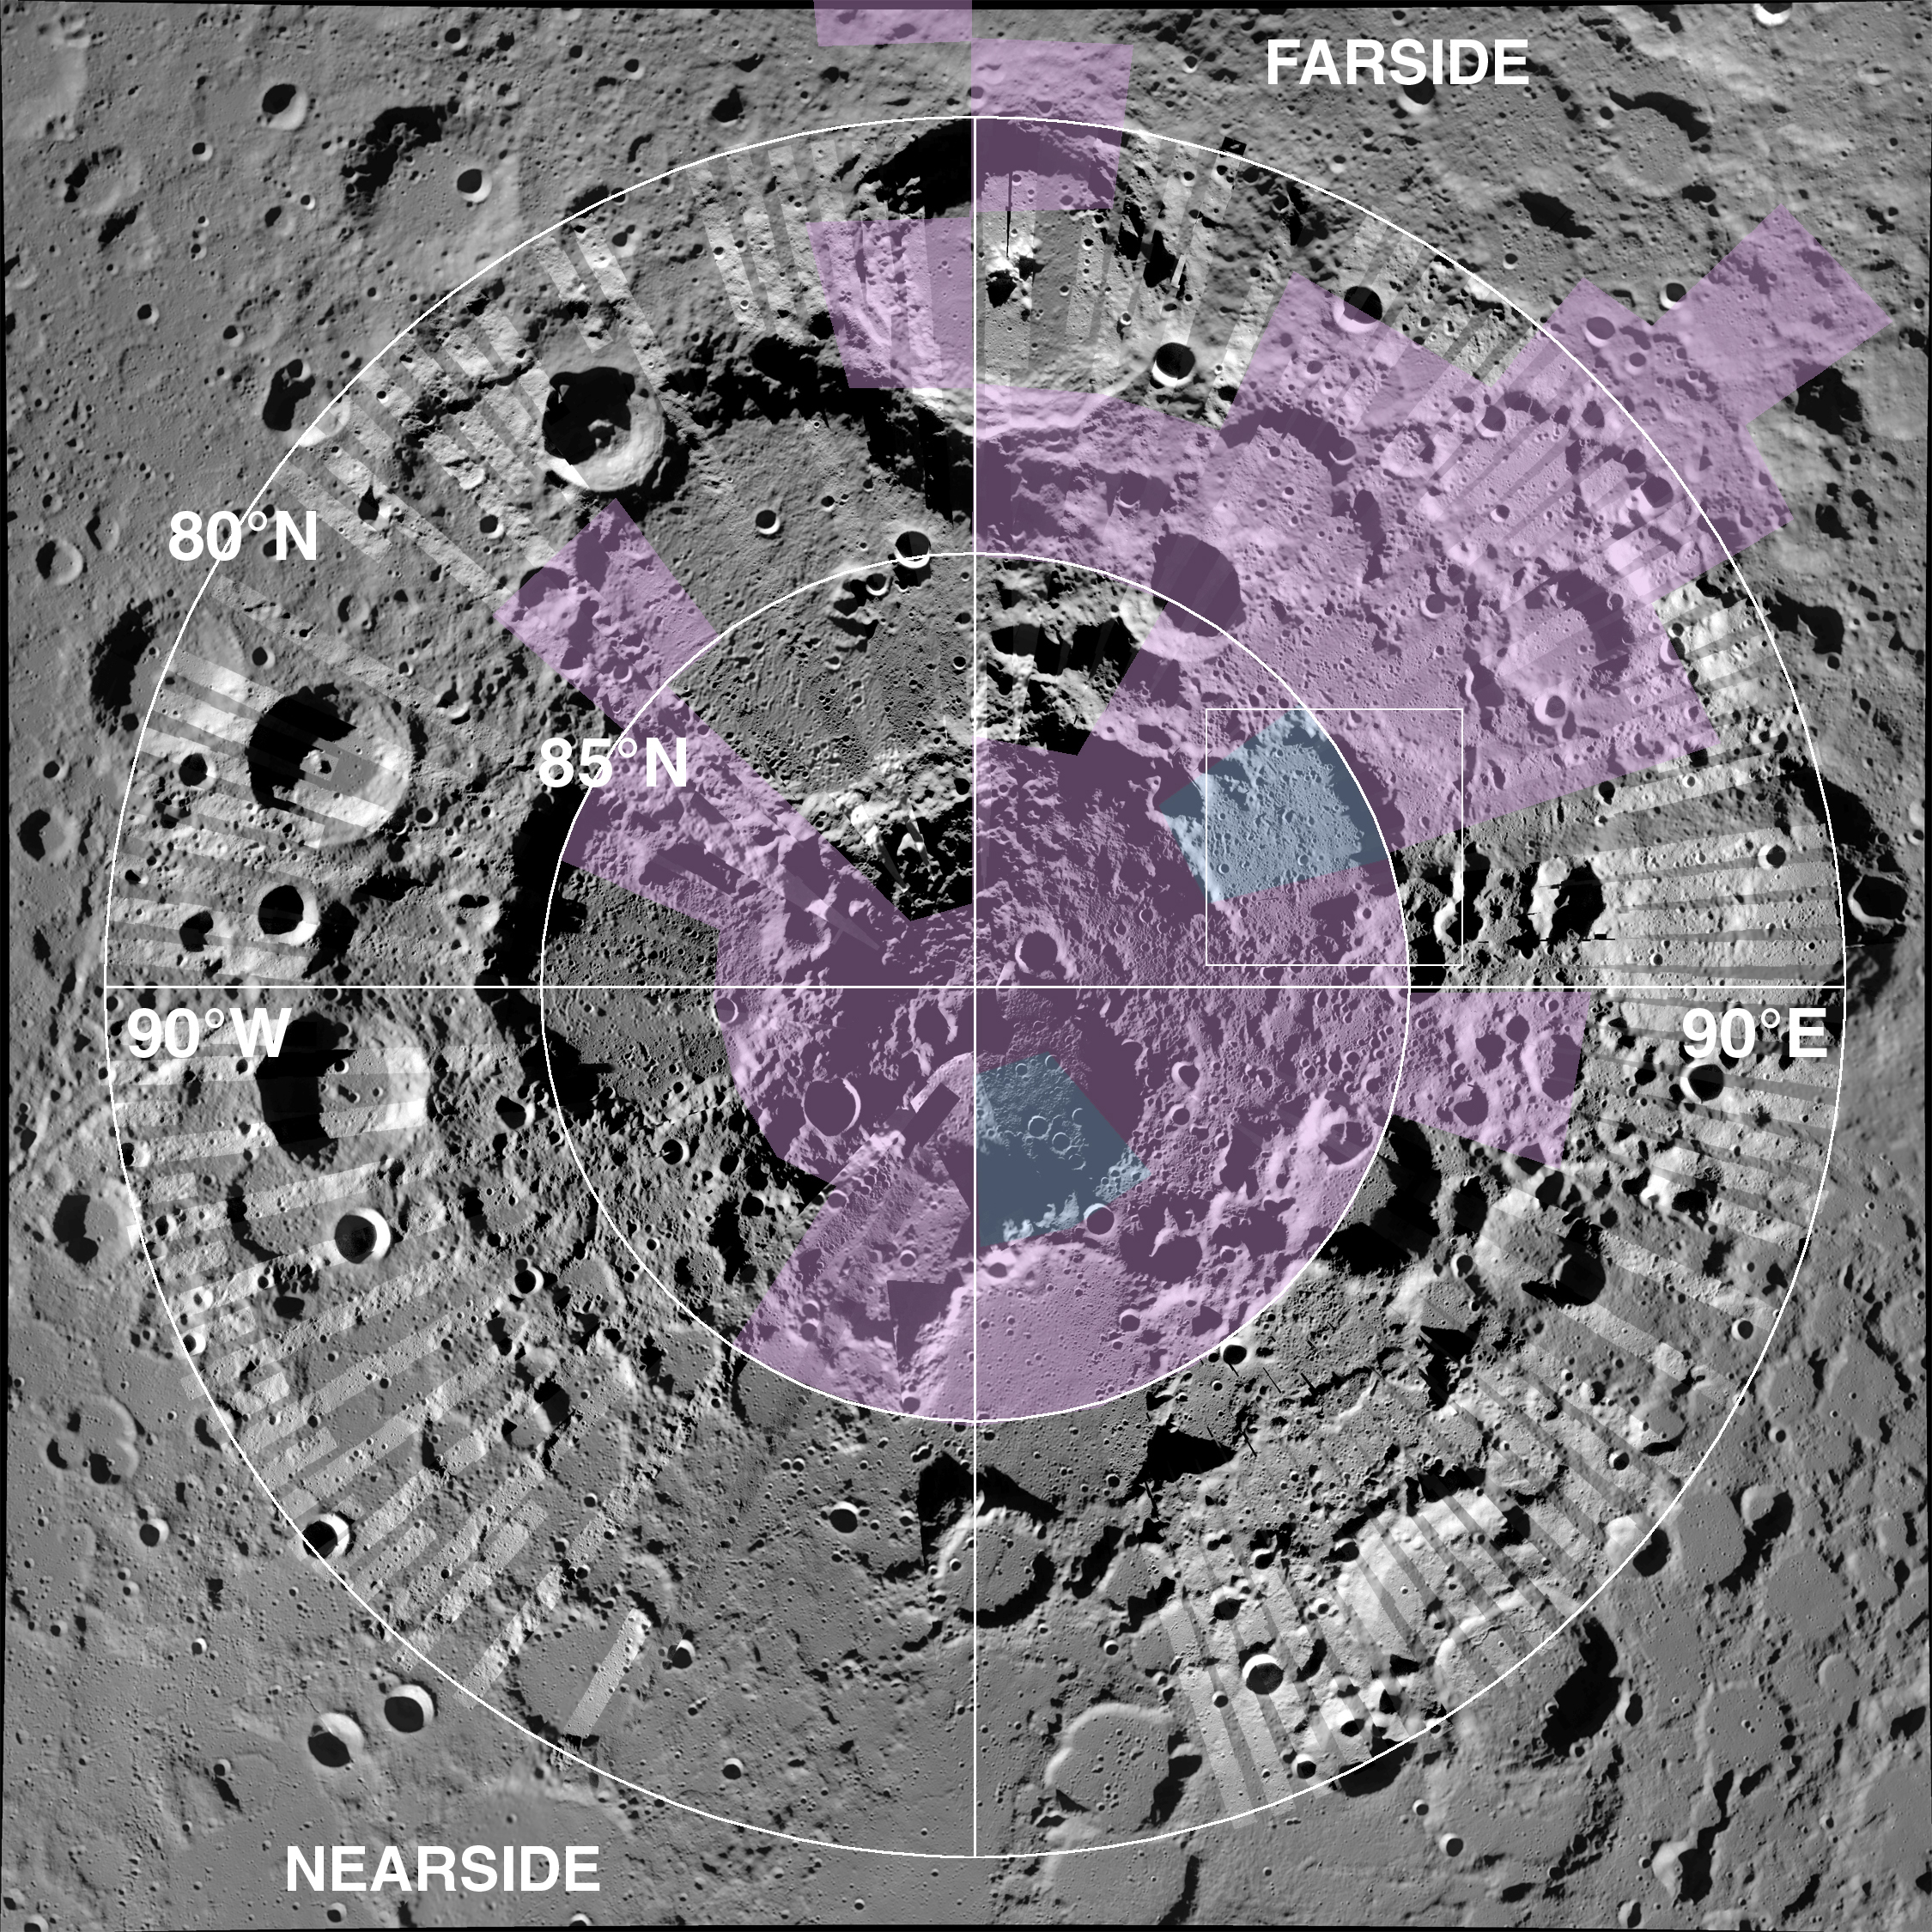 News - Malin Space Science Systems High Resolution Moon Map on saturn's moons map, printable moon map, large moon map, topographic moon map, moon texture map, titan moon surface map, full moon map, moon elevation map, nasa moon map, 3d moon map, interactive moon map, google moon map, high res full moon in winter, moon craters map, europa moon map, national geographic moon map, north pole moon map, moon bump map, far side moon map, high res moon texture,